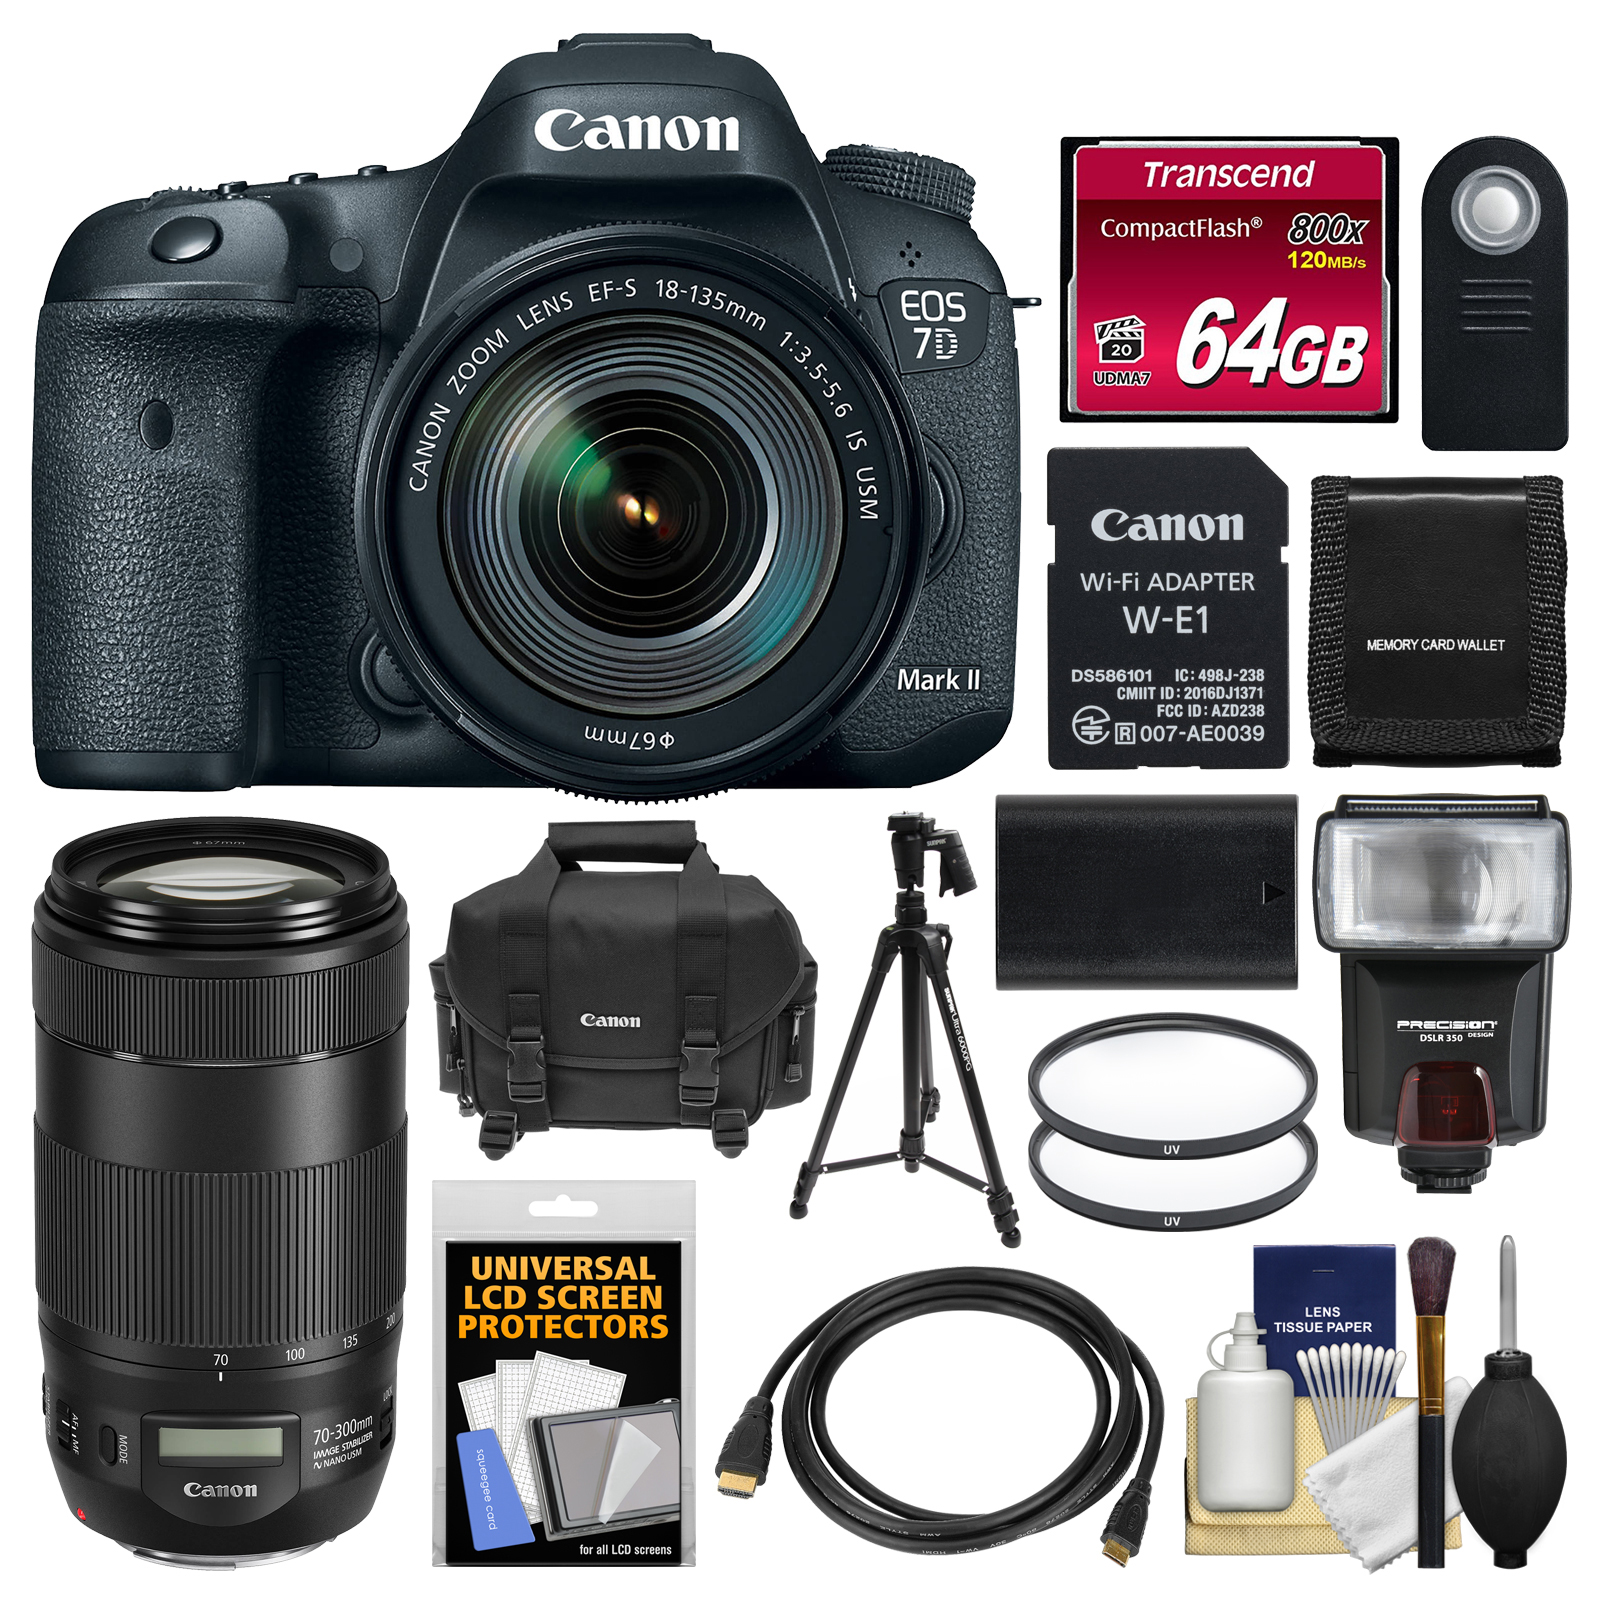 Canon EOS 7D Mark II Digital SLR Camera & 18-135mm IS USM & Wi-Fi Adapter with 70-300mm IS II Lens + 64GB Card... by Canon